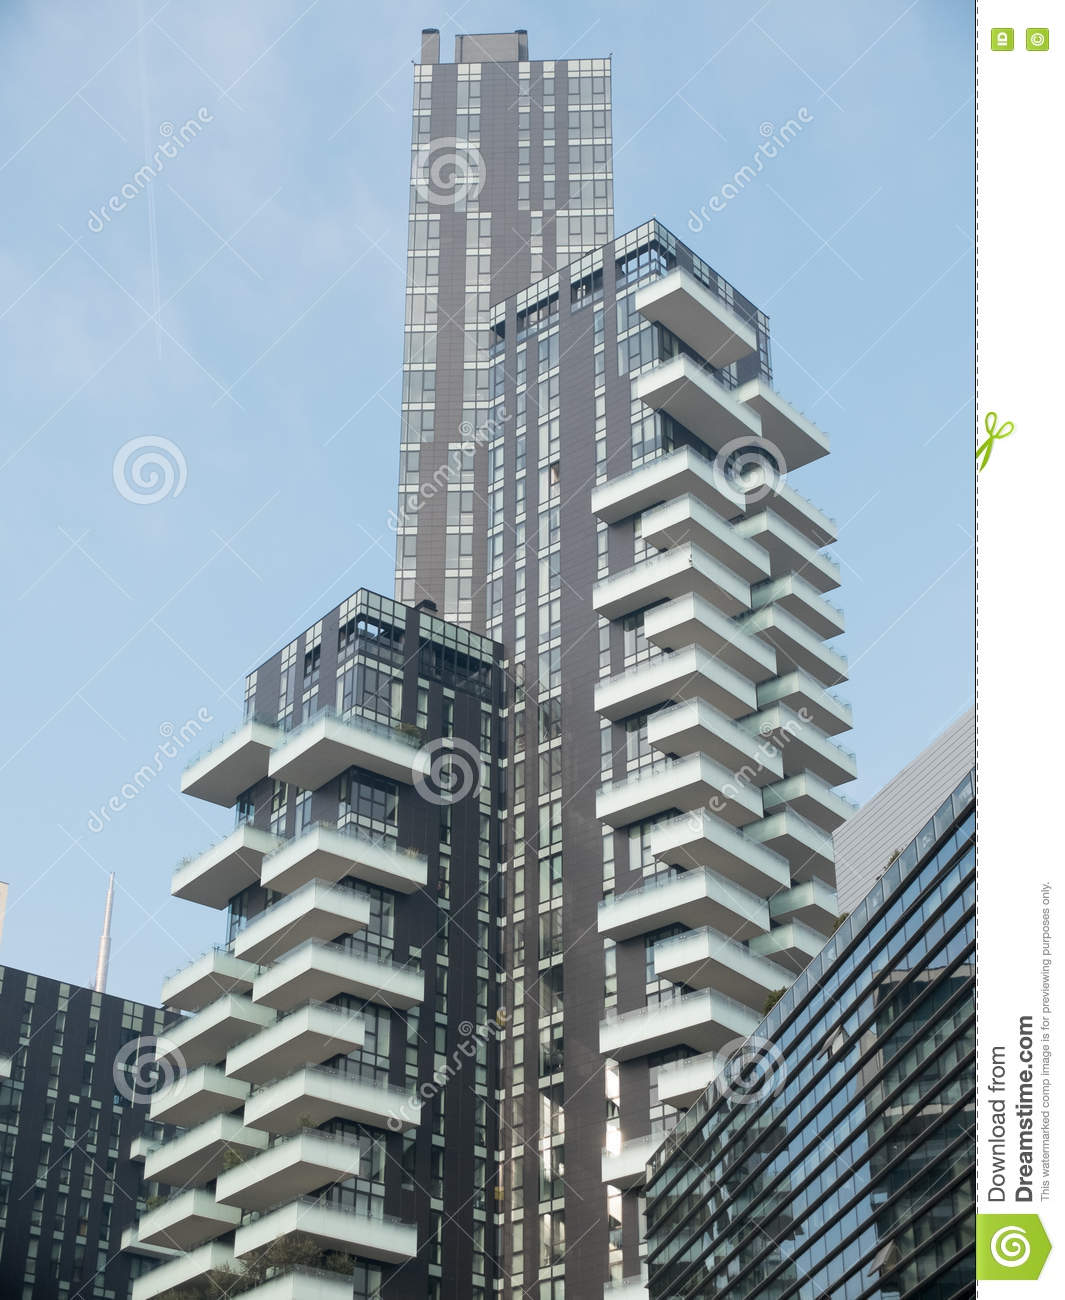 Apartment View: Modern Apartment Building With Balconies In City Stock